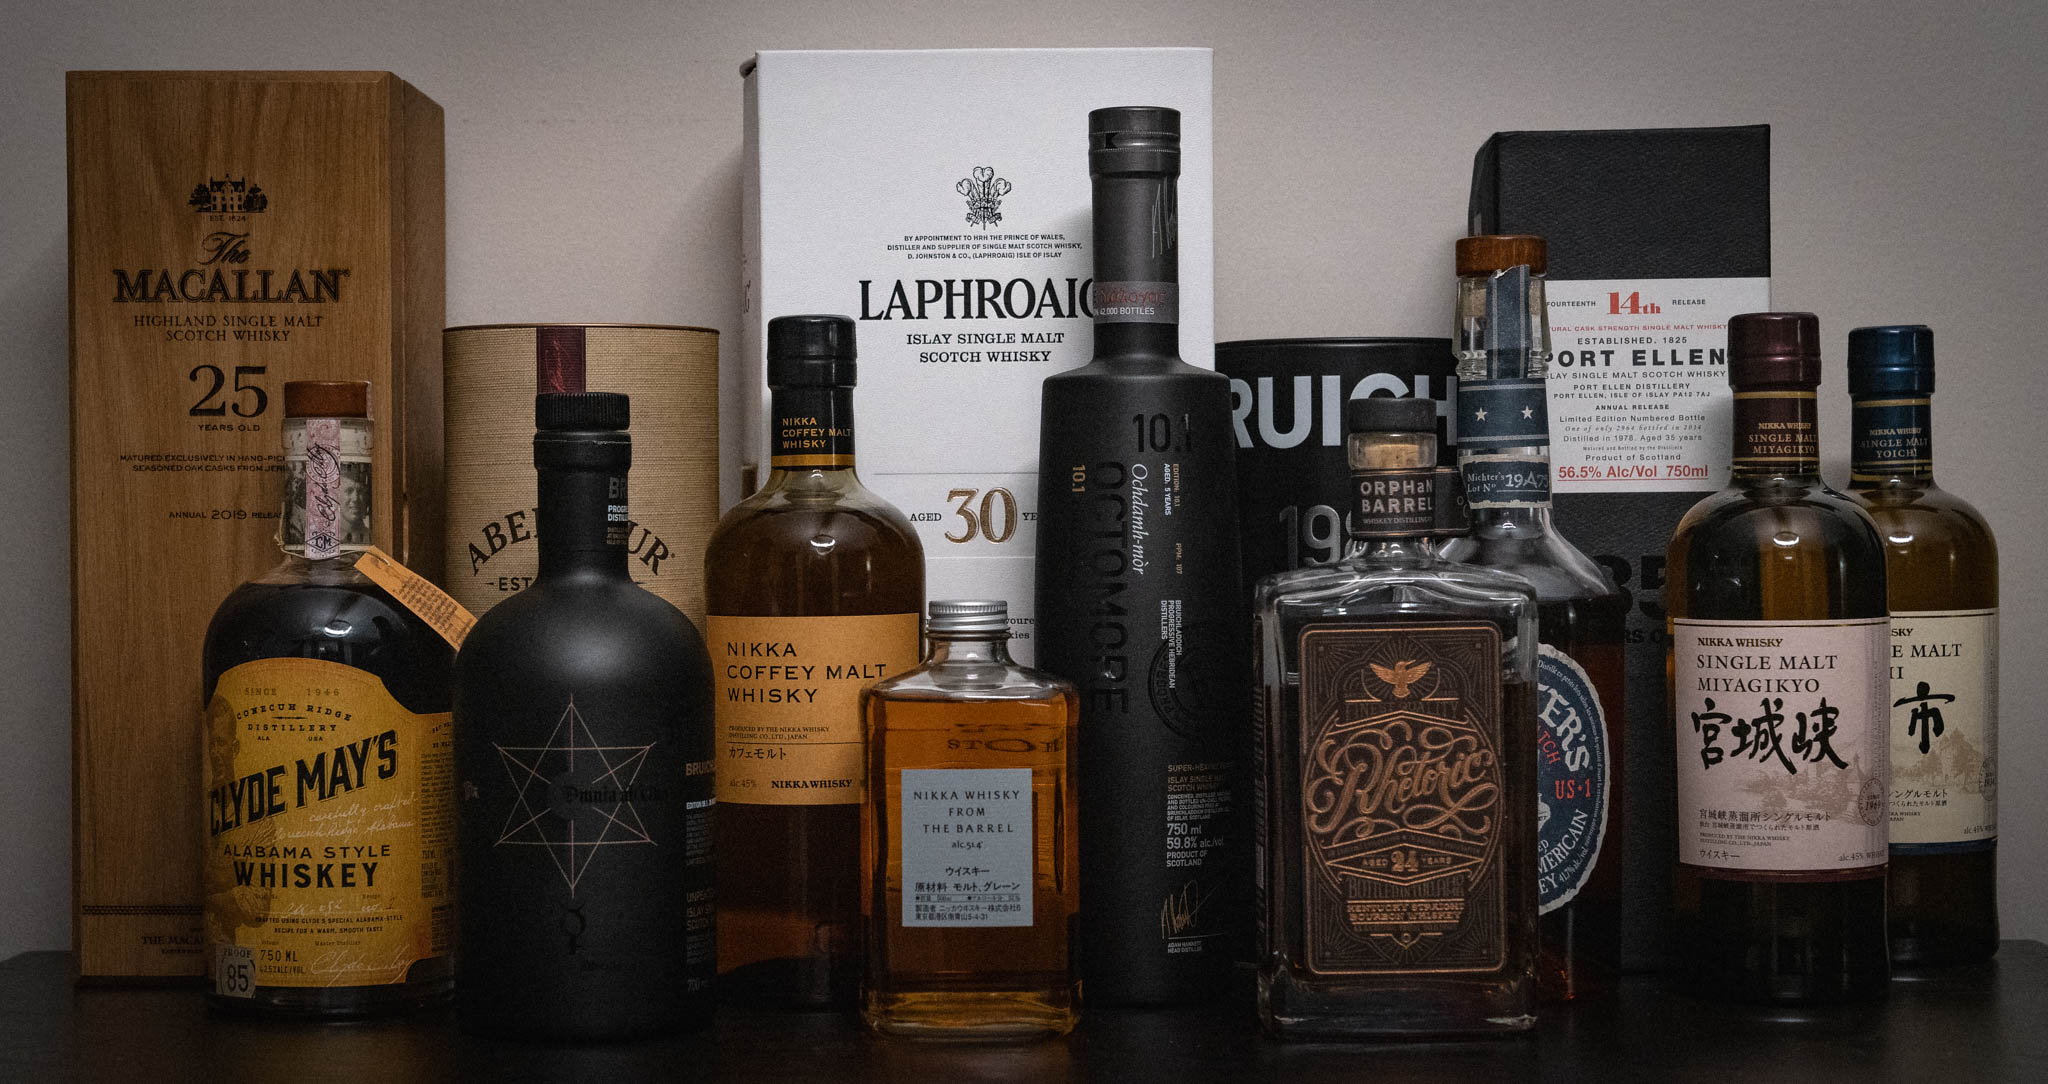 A collection of whiskies sitting on a shelf